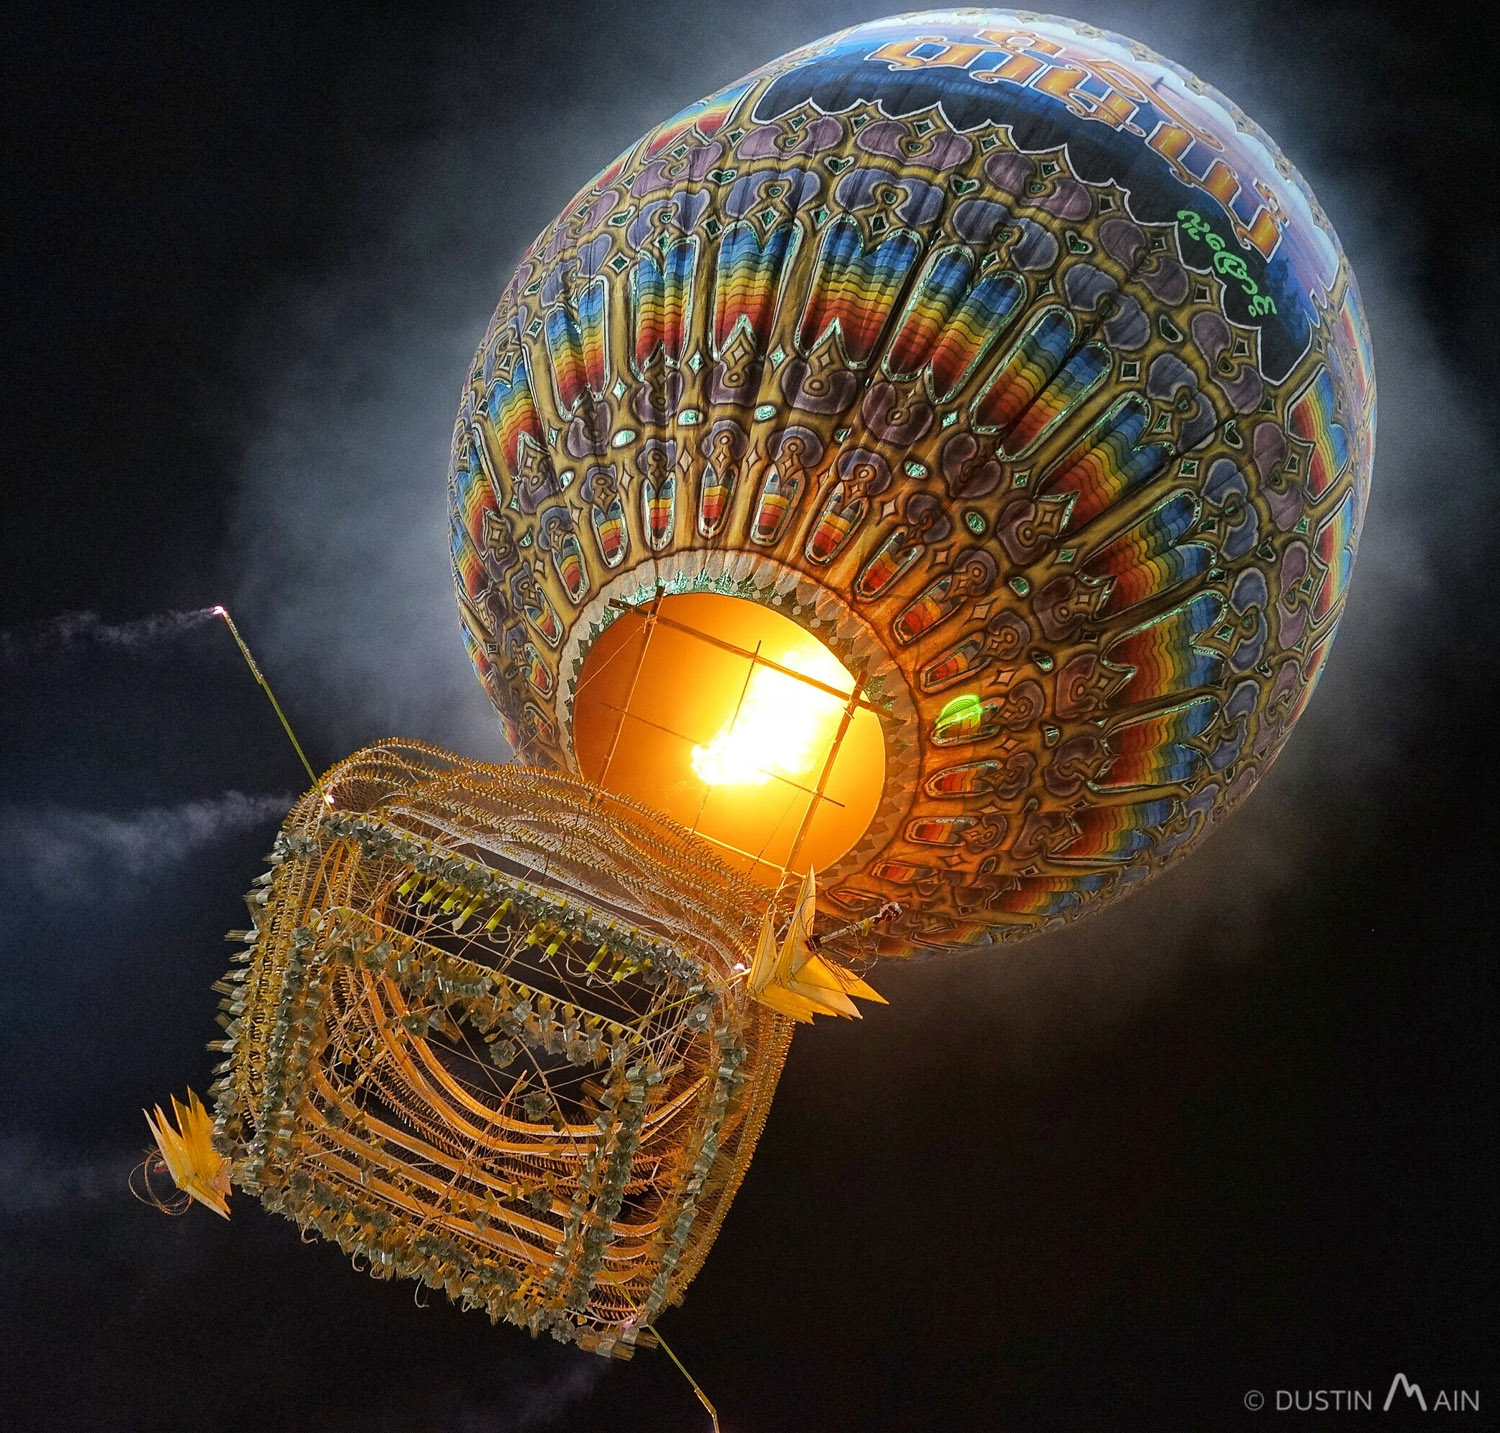 A fire balloon launches for the Tazaungdaing festival in Taunggyi.